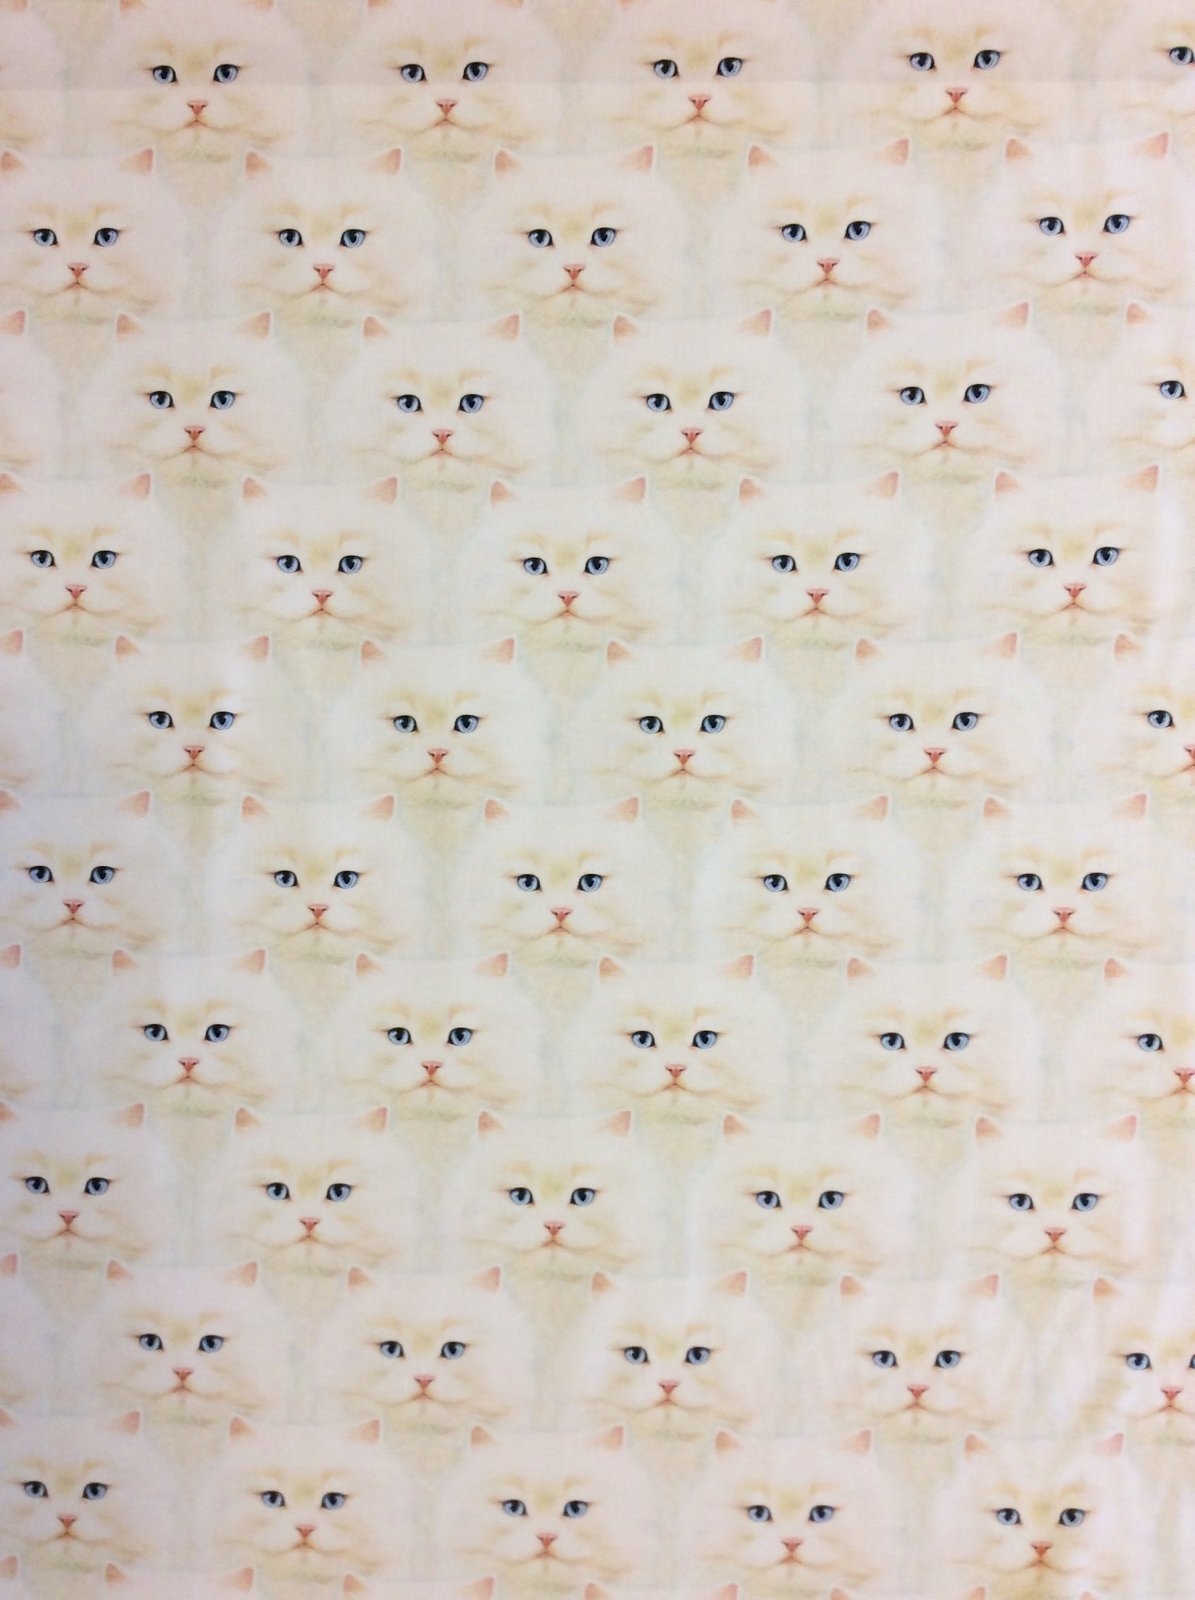 Cat Faces Meow White Kitty All Over Print Cotton Quilting Fabric RK224